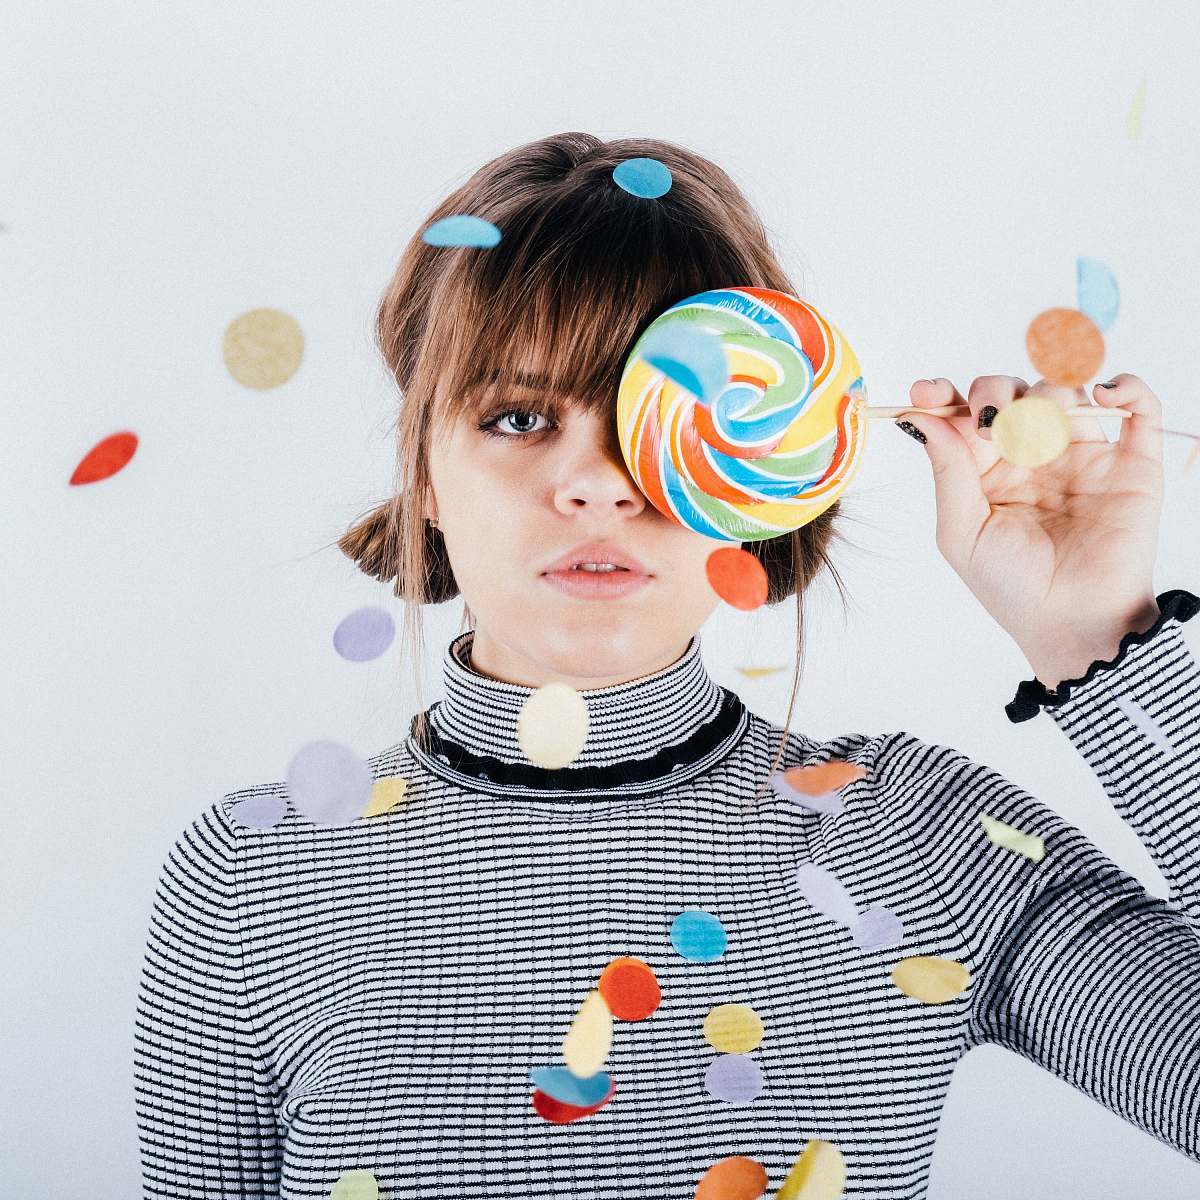 stock photos free  of person woman covering her right eye with lollipop human